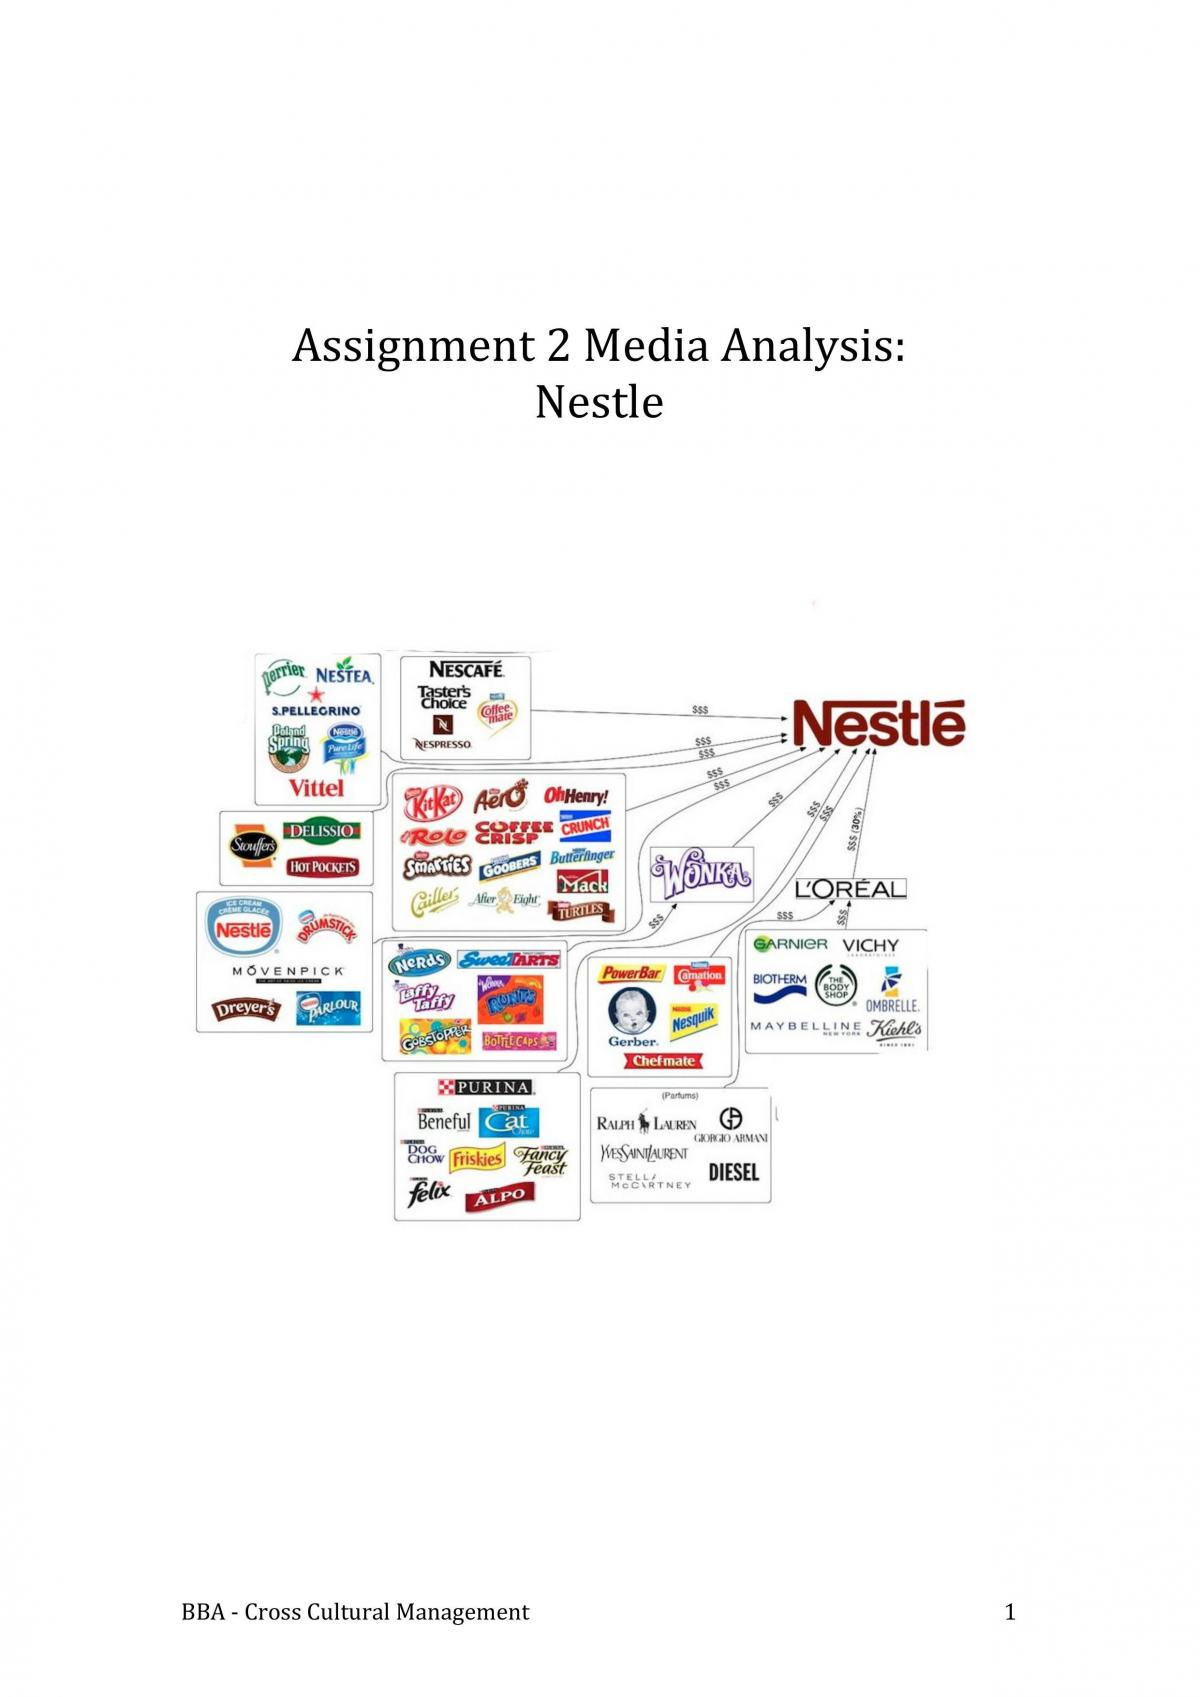 BBA340 _ Media Analysis Assignment 2 - Page 1